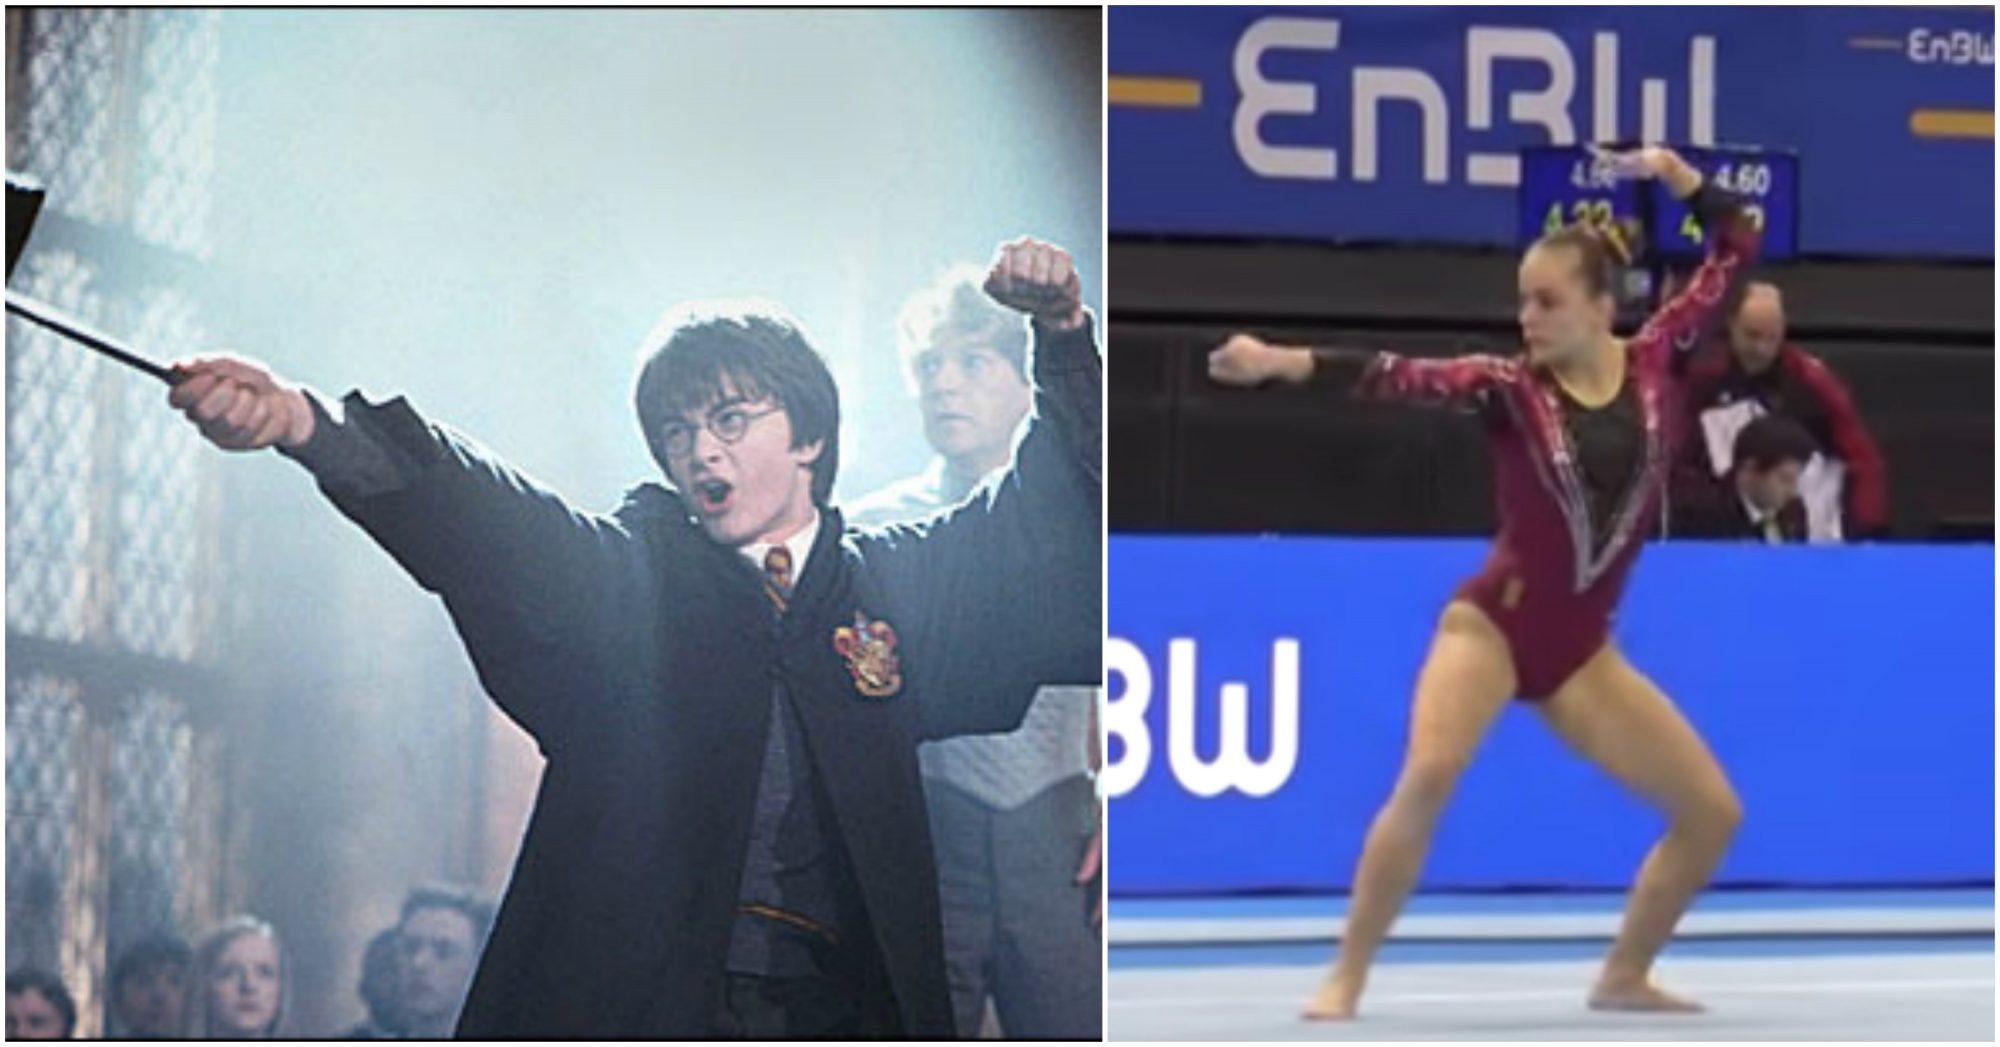 Image from Harry Potter-themed routine